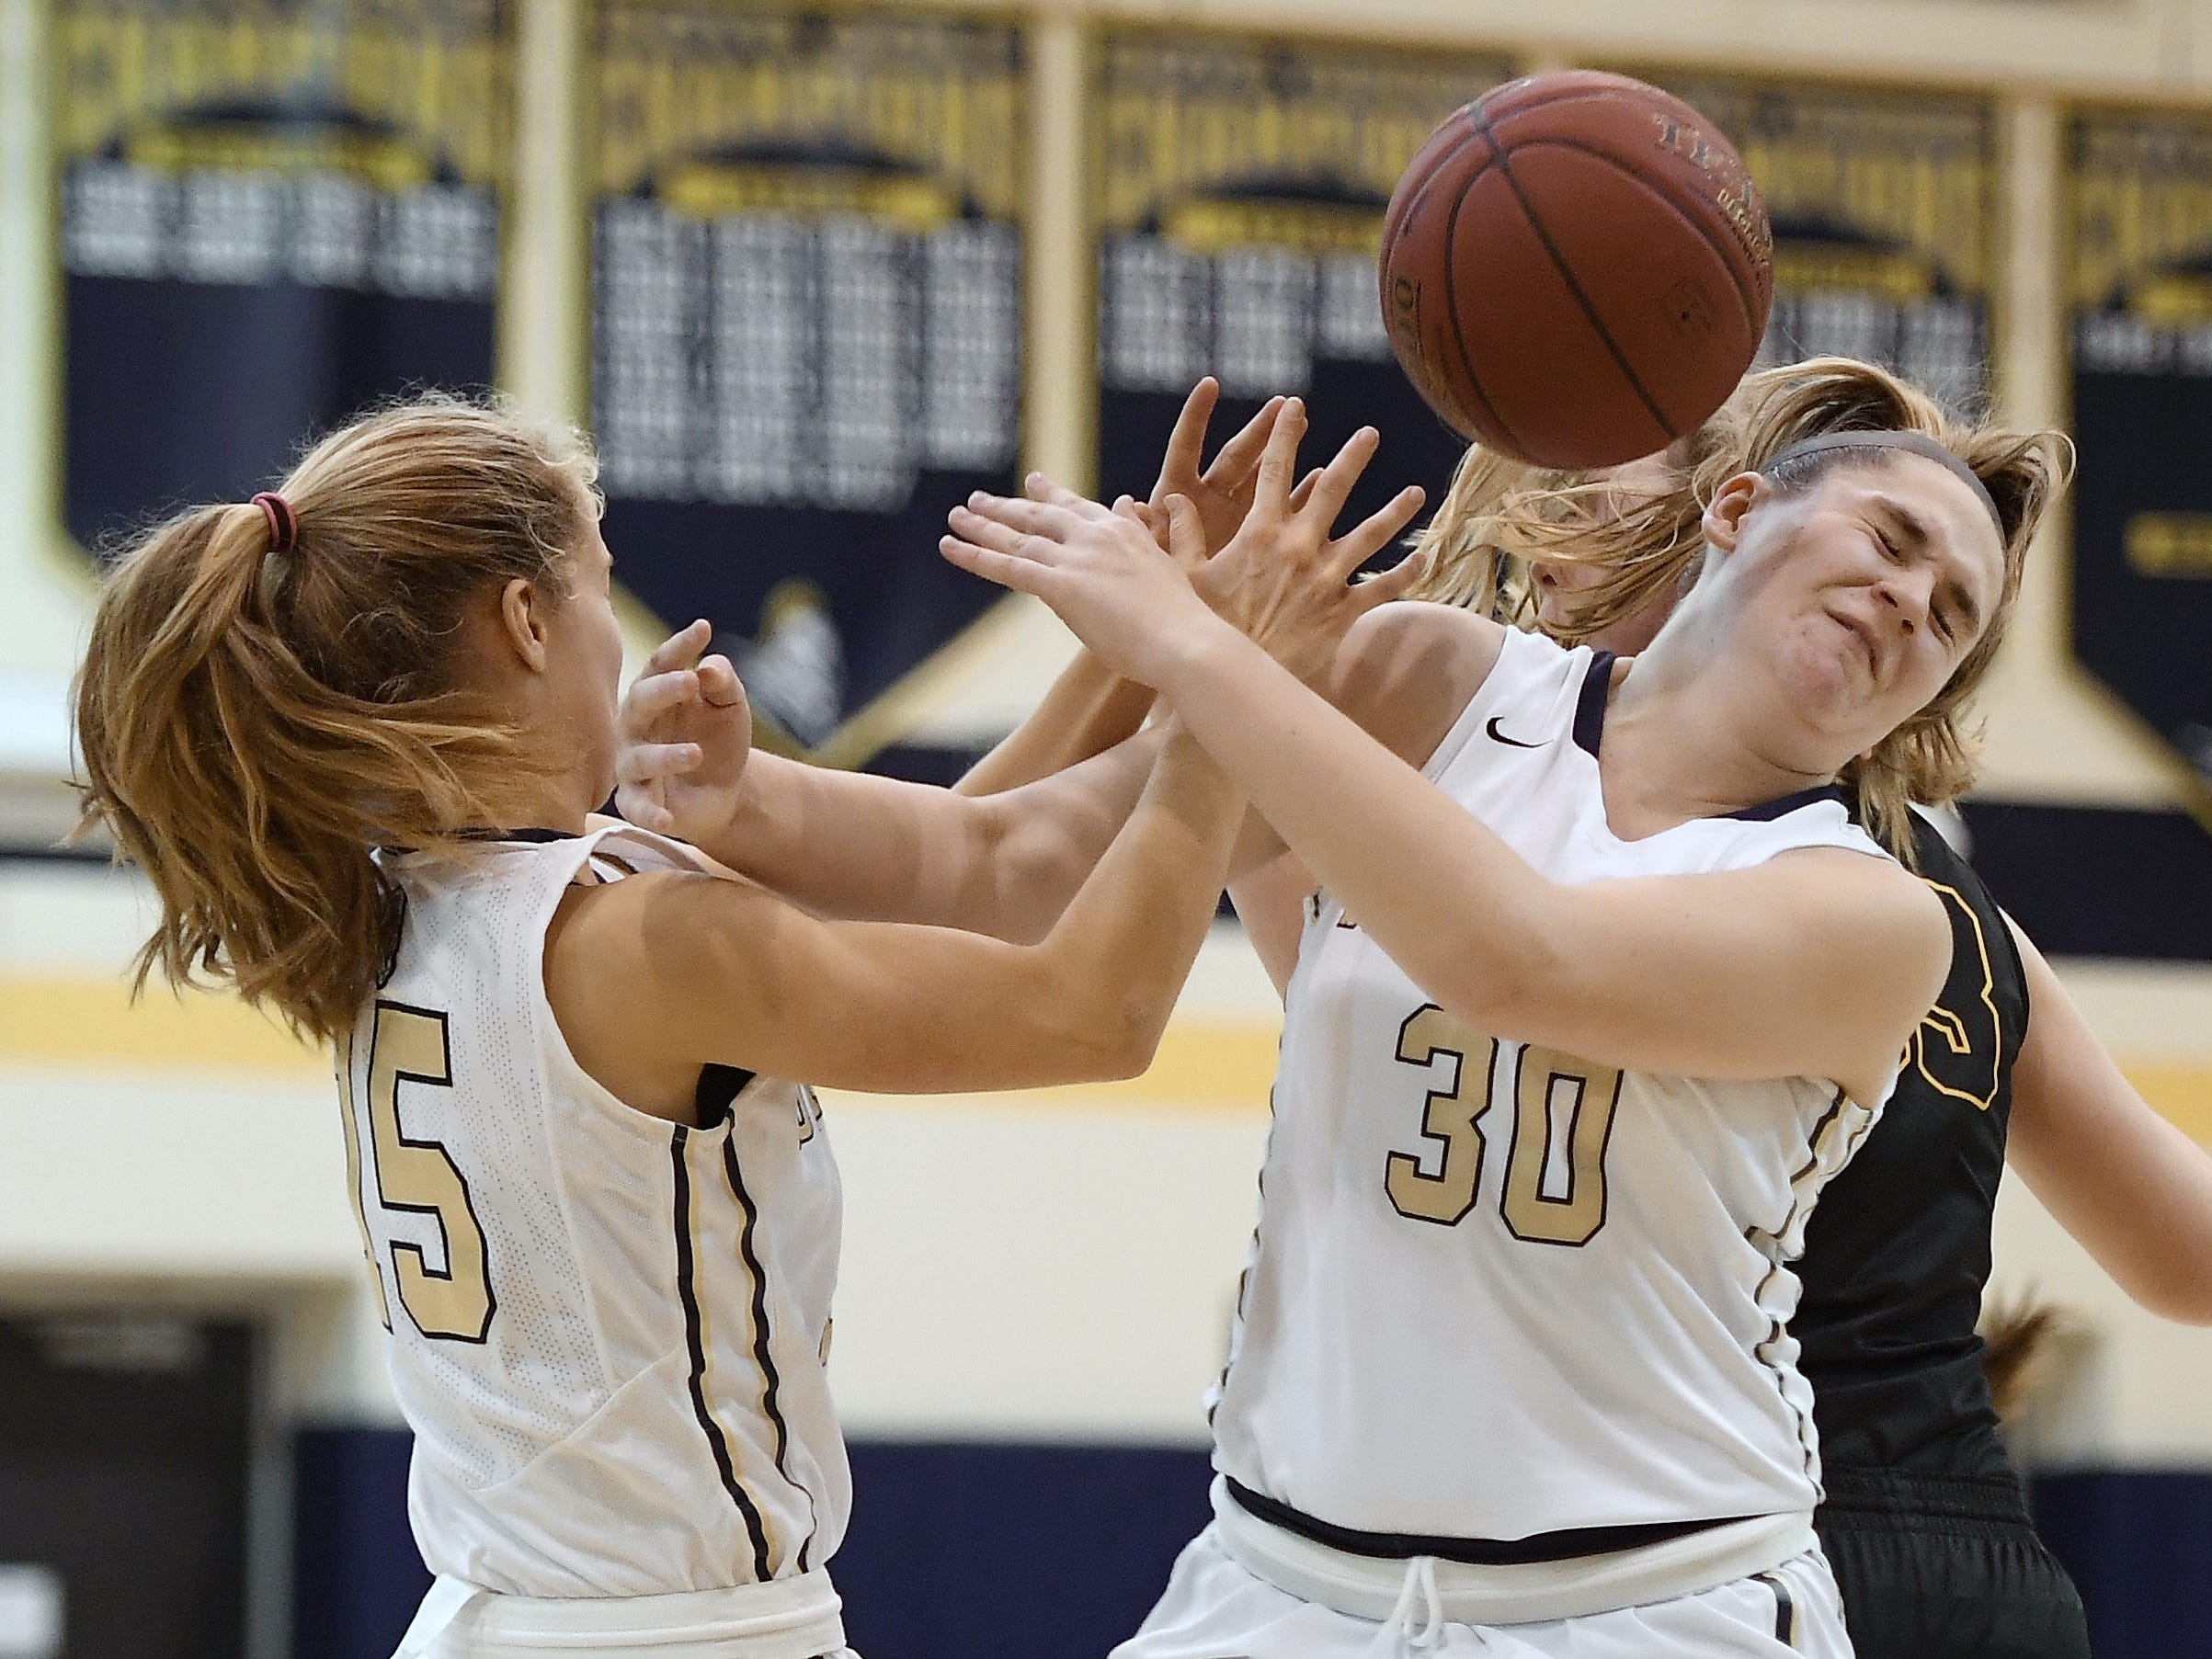 Pittsford Sutherland's Aneliese Brandt, right, reaches for a rebound with teammate Erika Newcomb during a regular season game played at Pittsford Sutherland High School on Thursday, Nov. 29, 2018. Pittsford Sutherland beat Honeoye Falls-Lima in overtime 53-47.